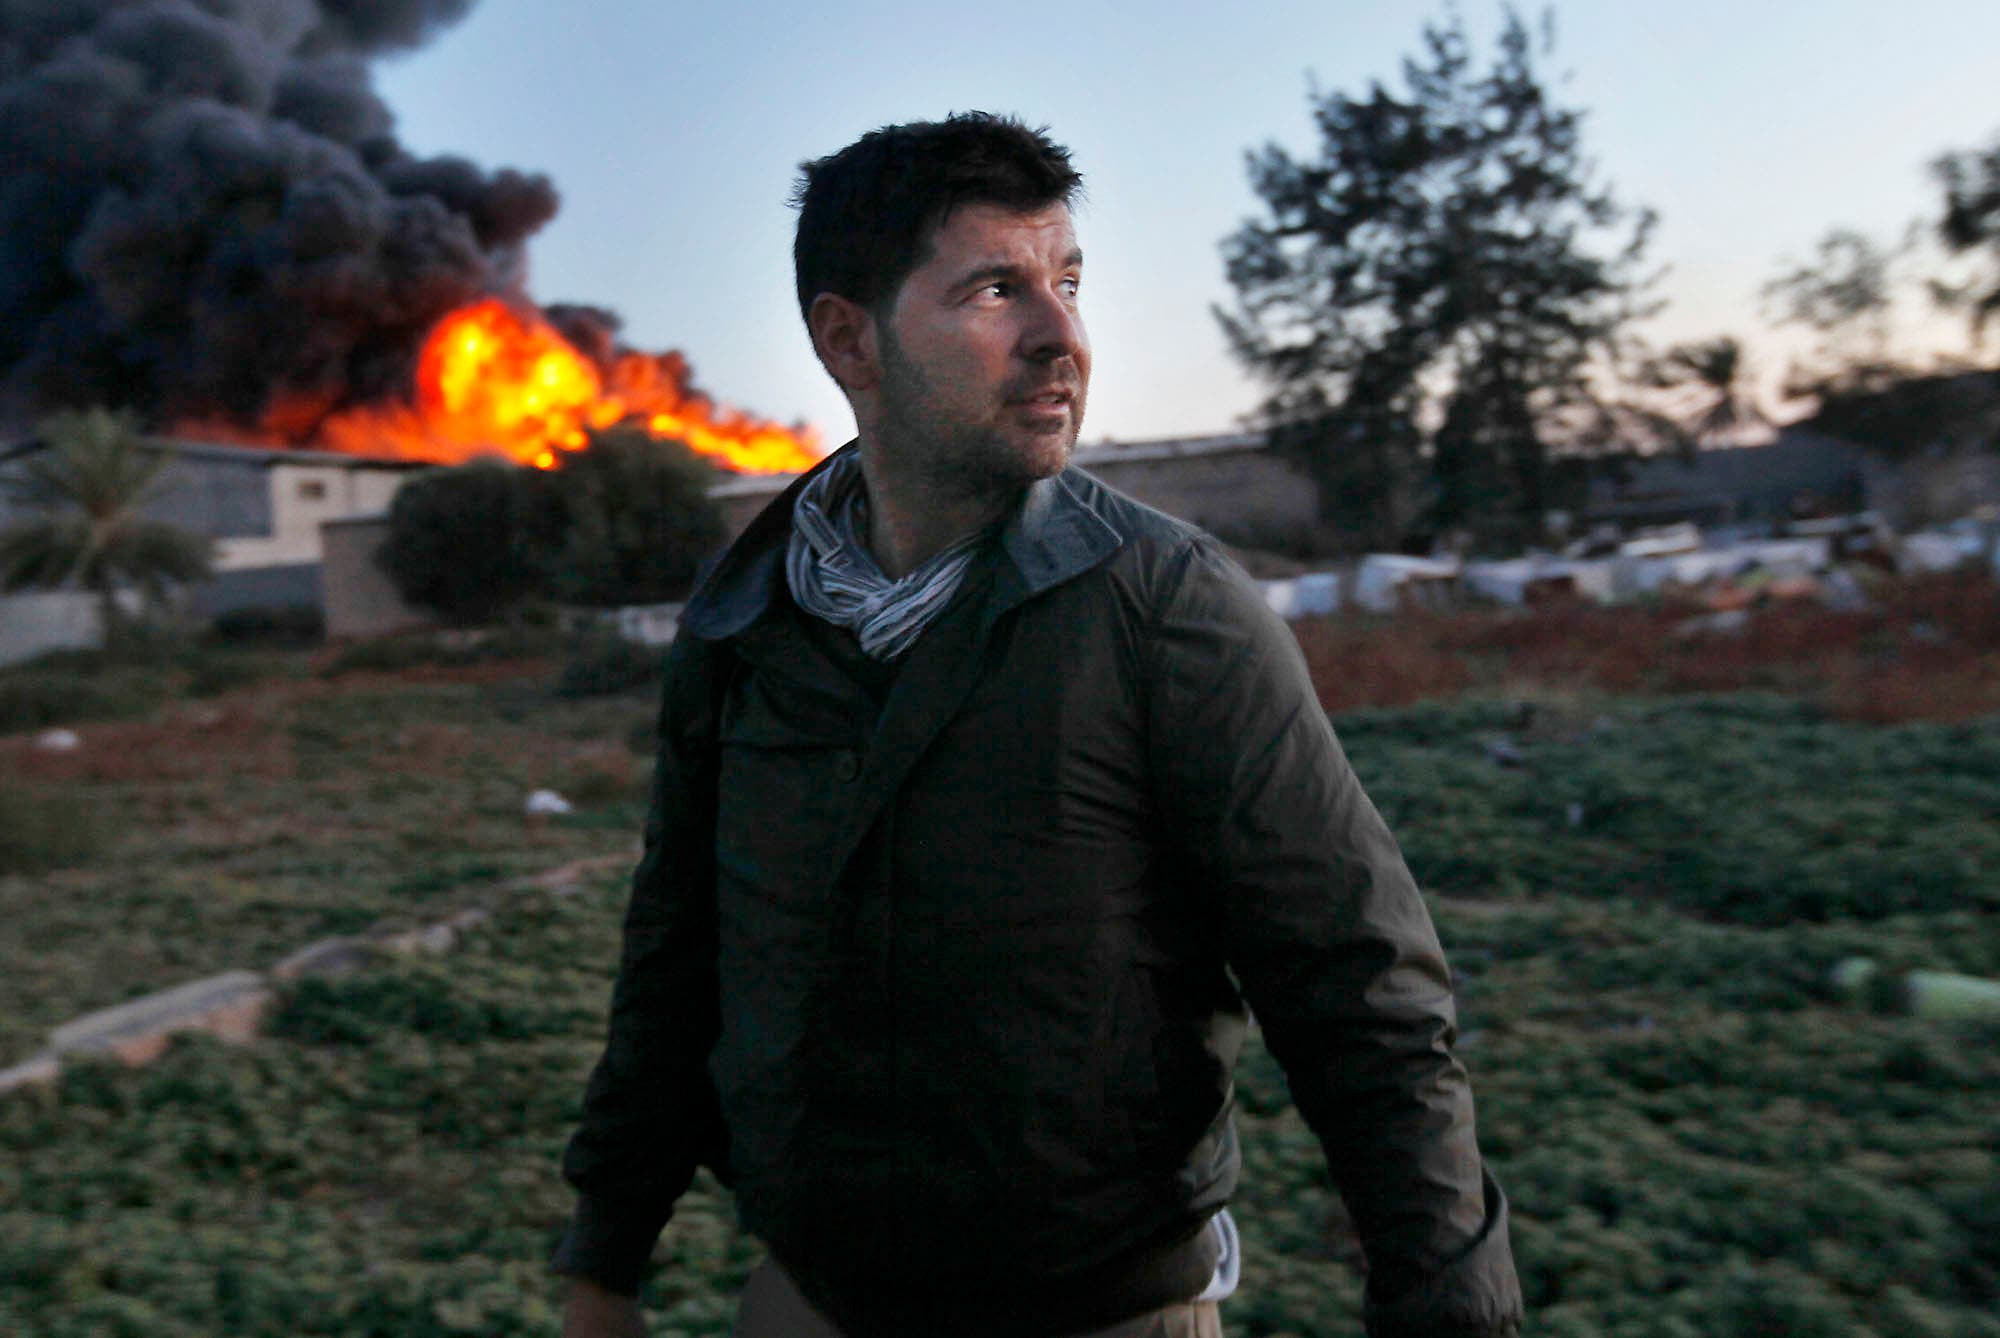 Getty Images photographer Chris Hondros  a couple of days before his ill-fated death in Musurata.